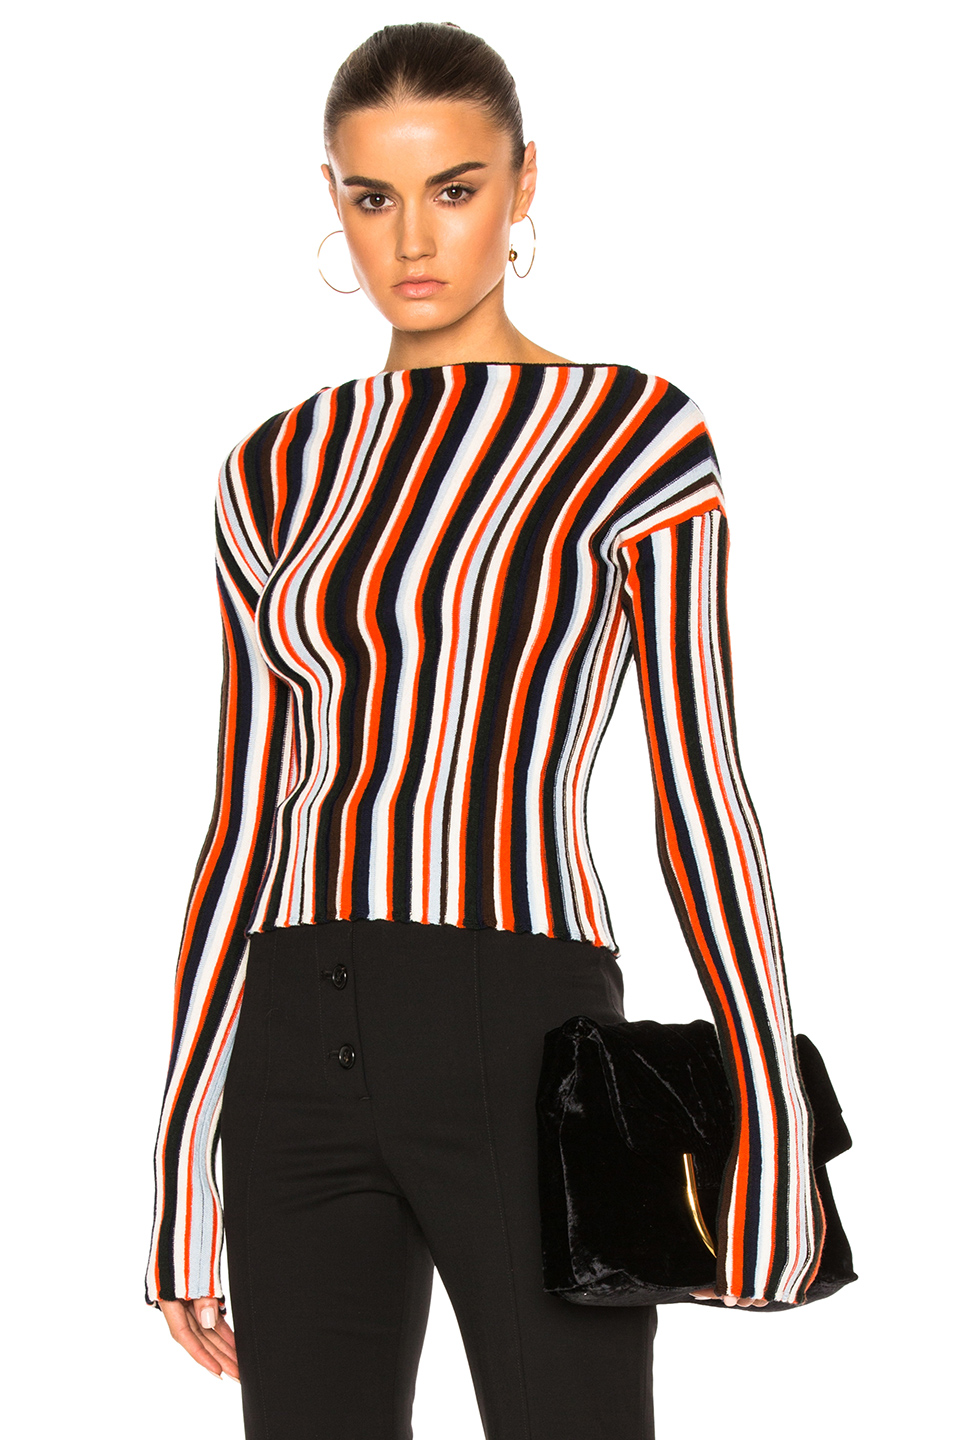 JACQUEMUS Striped Sweater in Stripes,Red